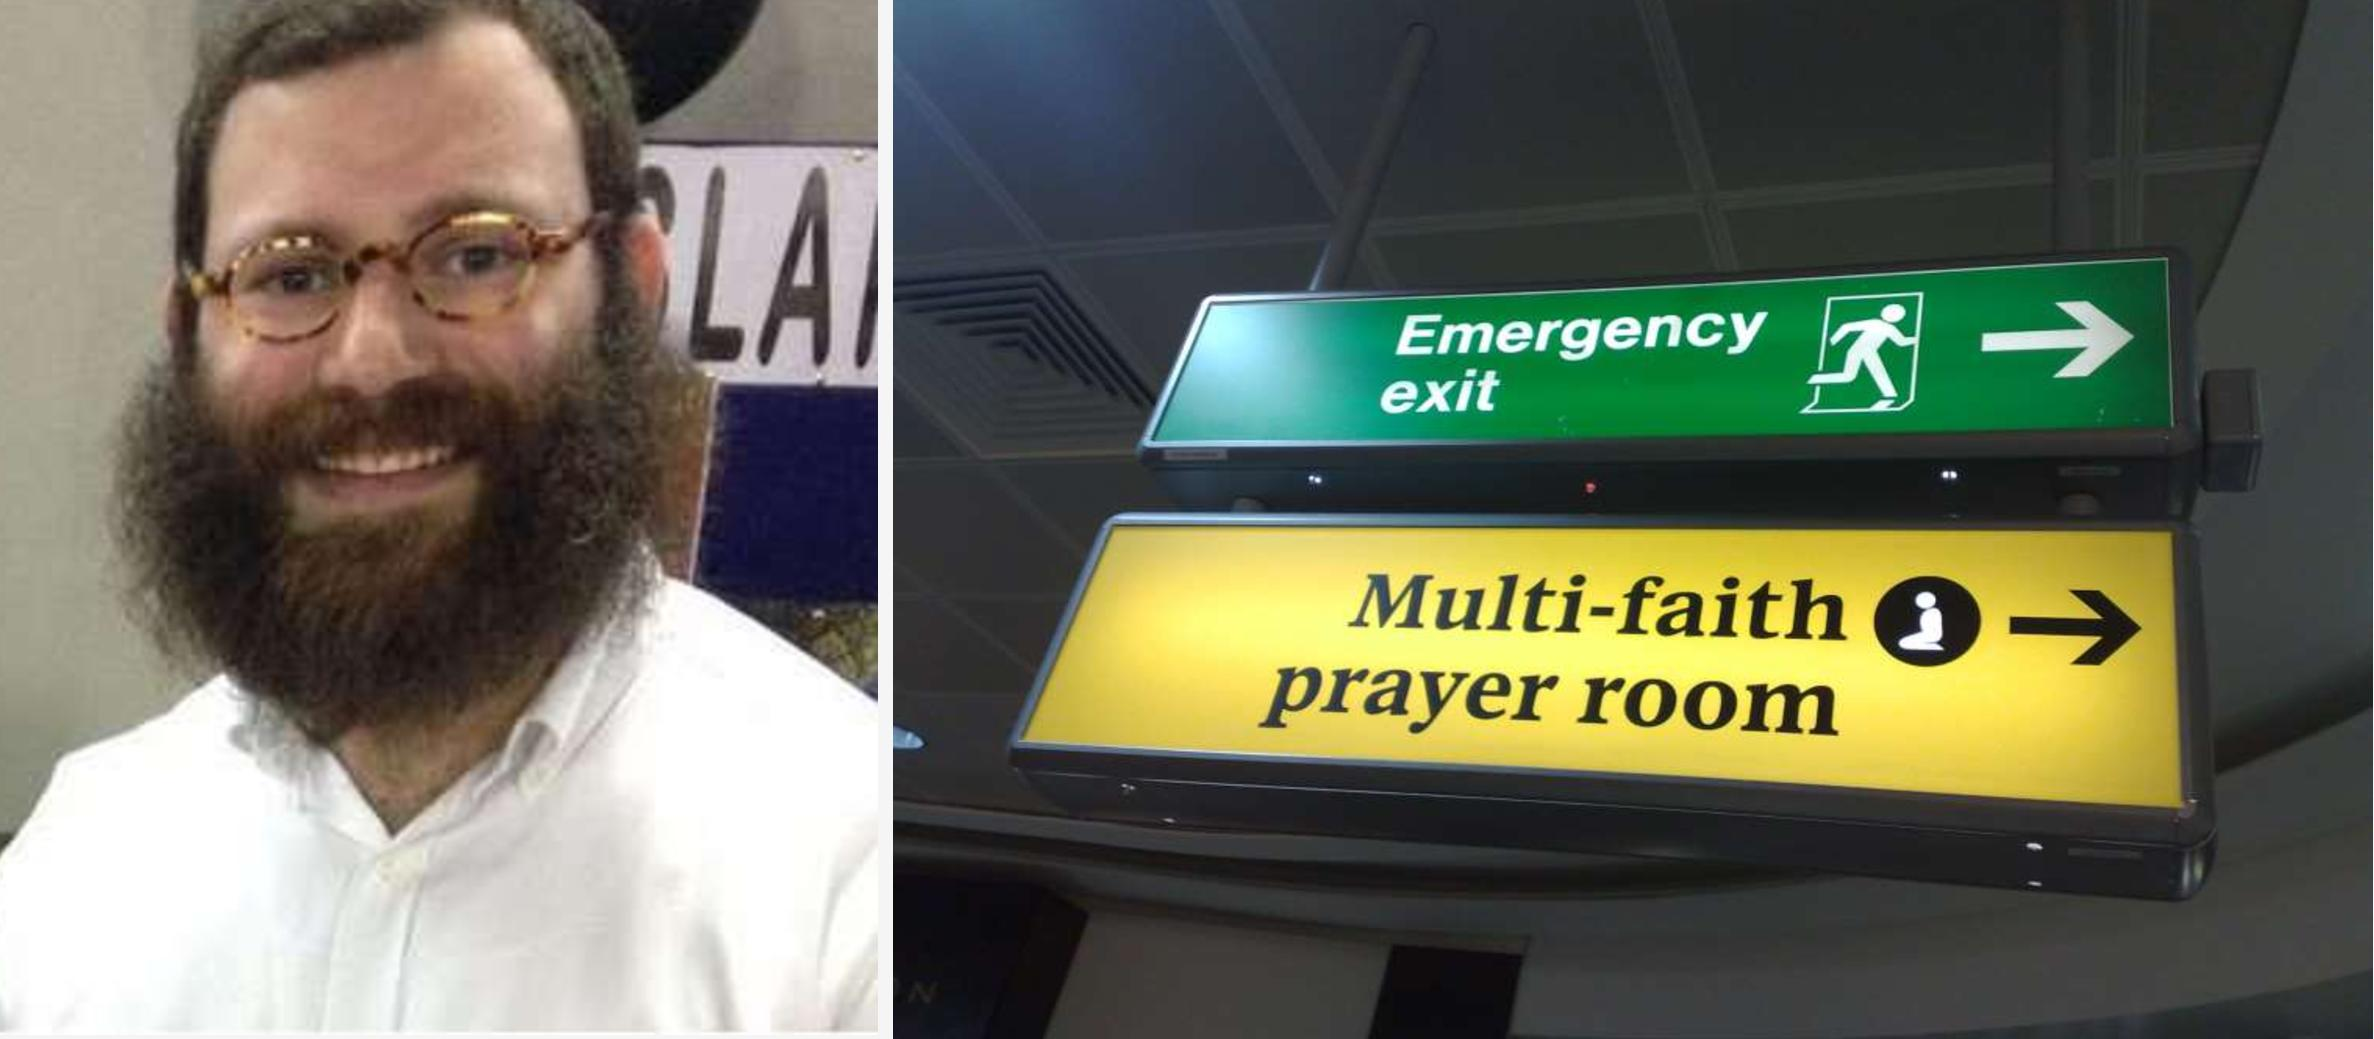 Heathrow apologises to rabbi told to take shoes off in prayer room